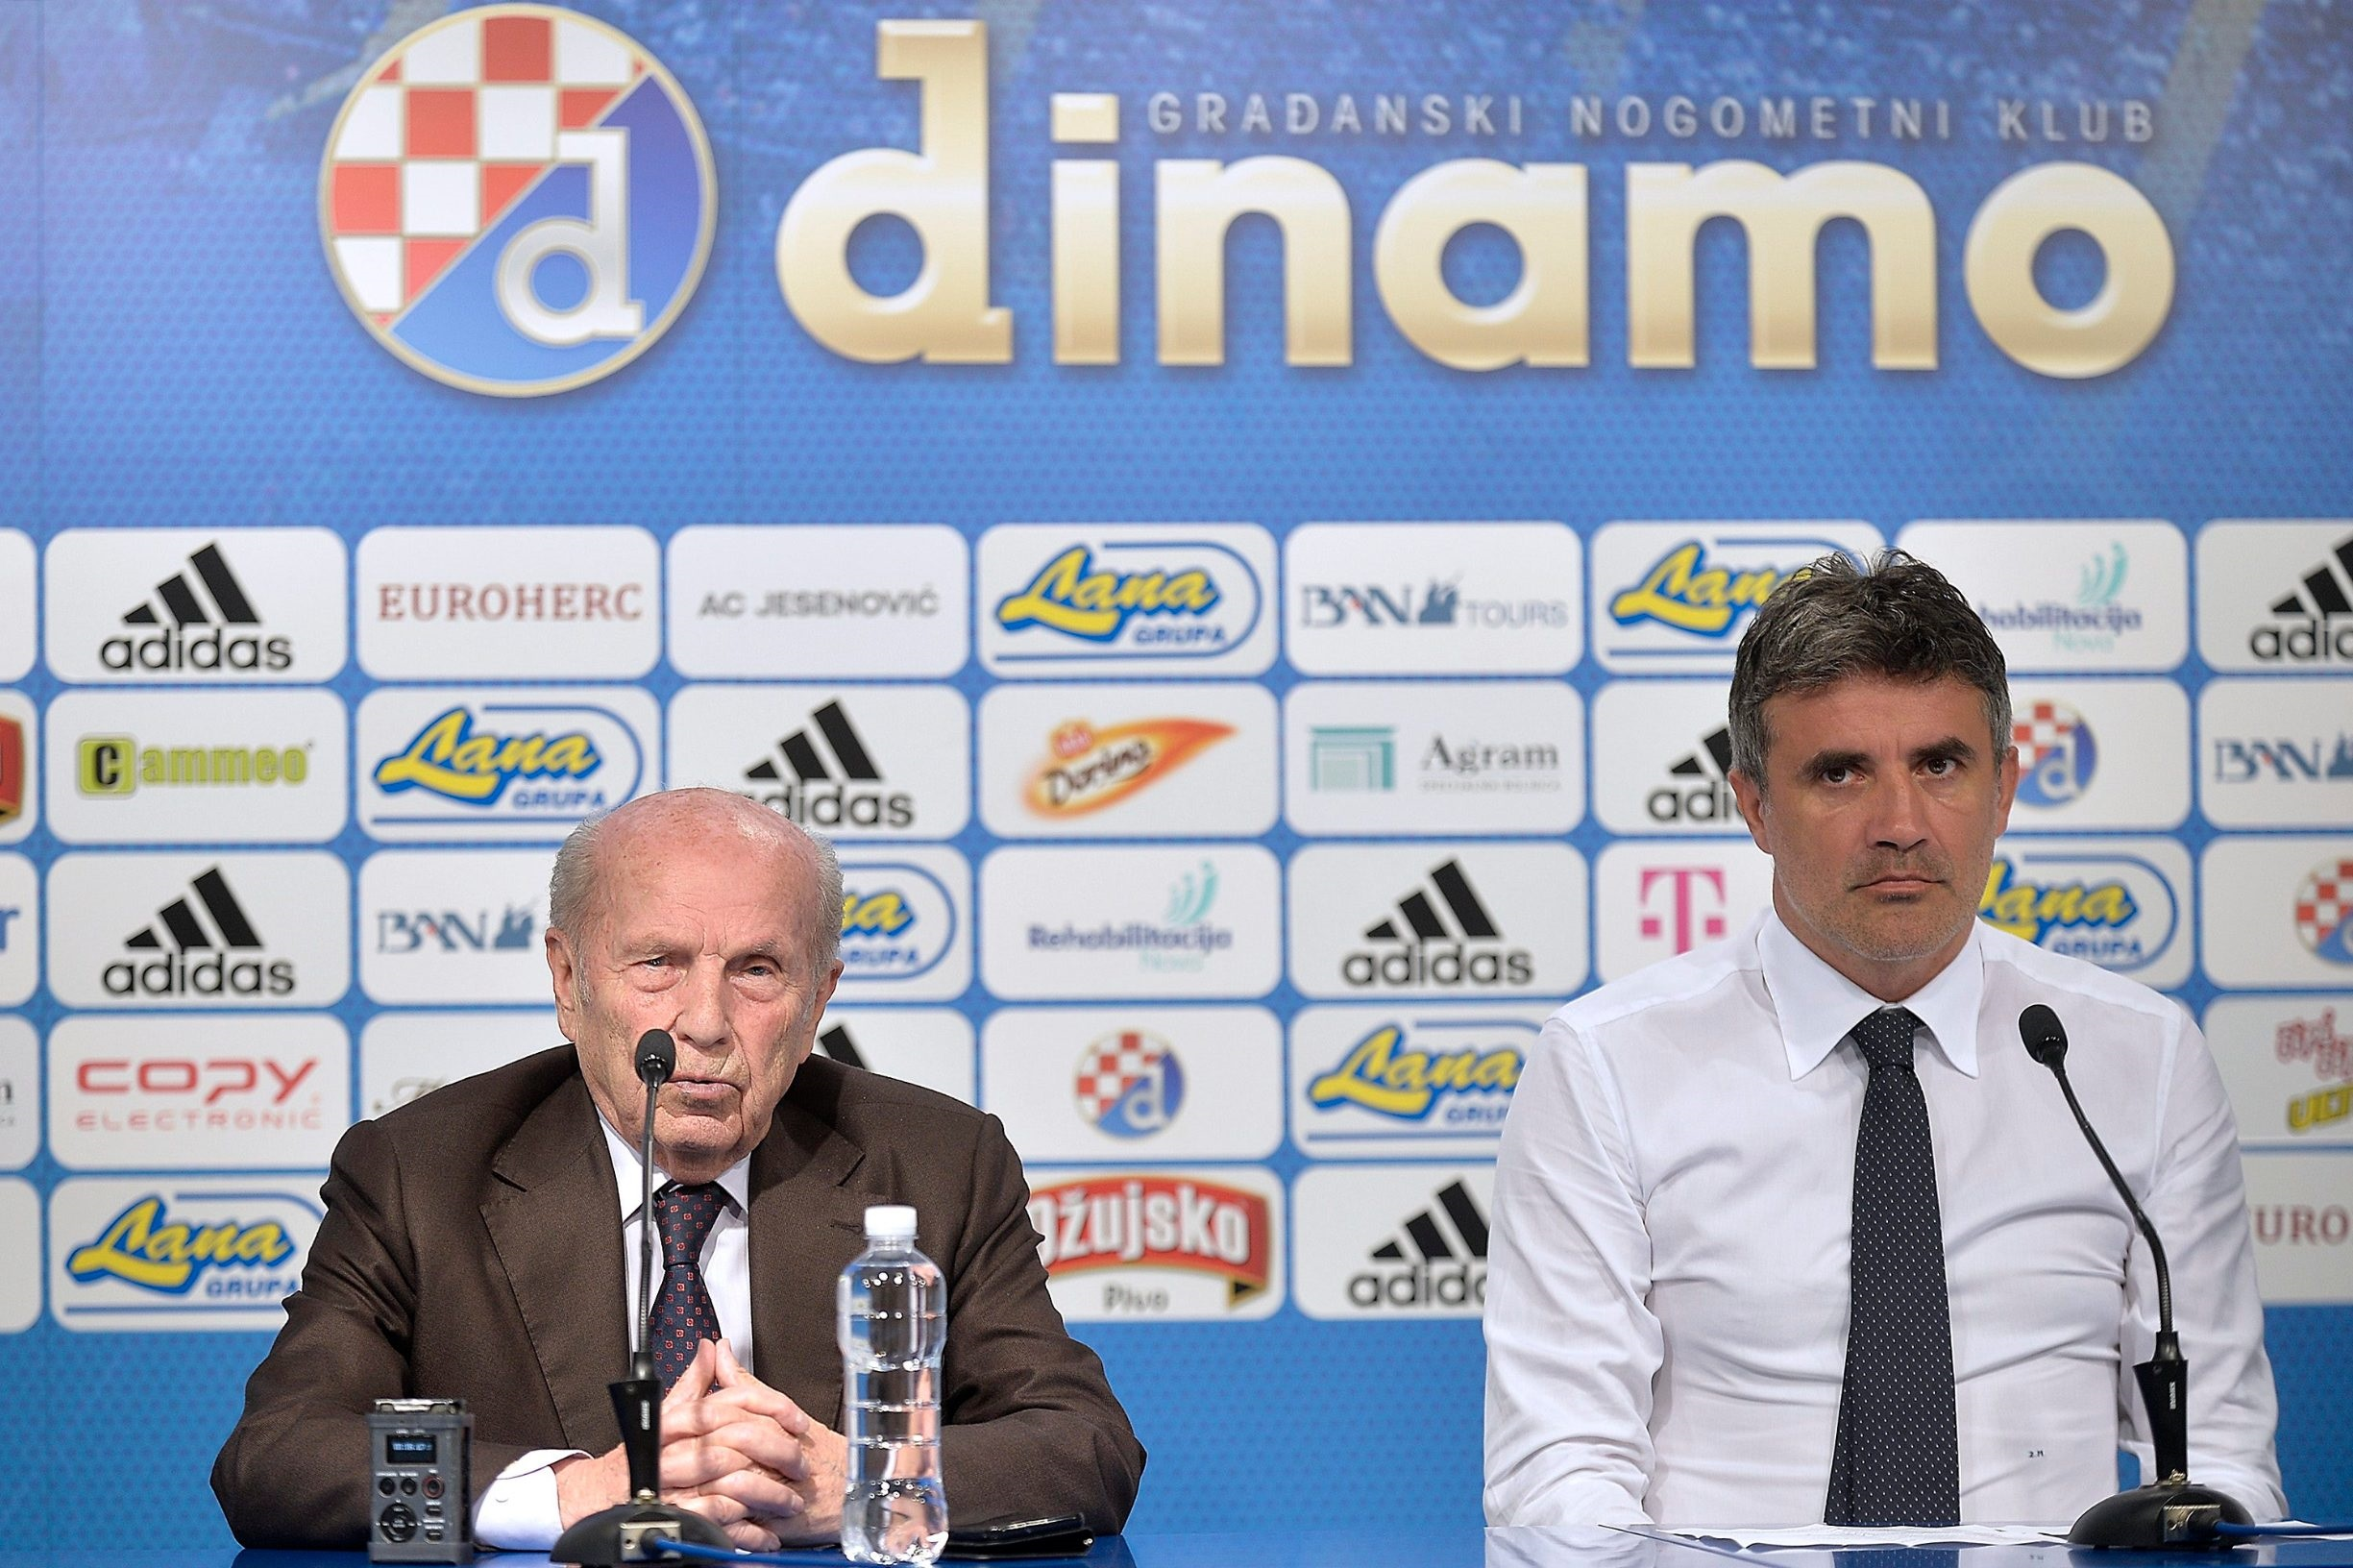 ecsImgdinamo_press05-050619-1547372706446460212